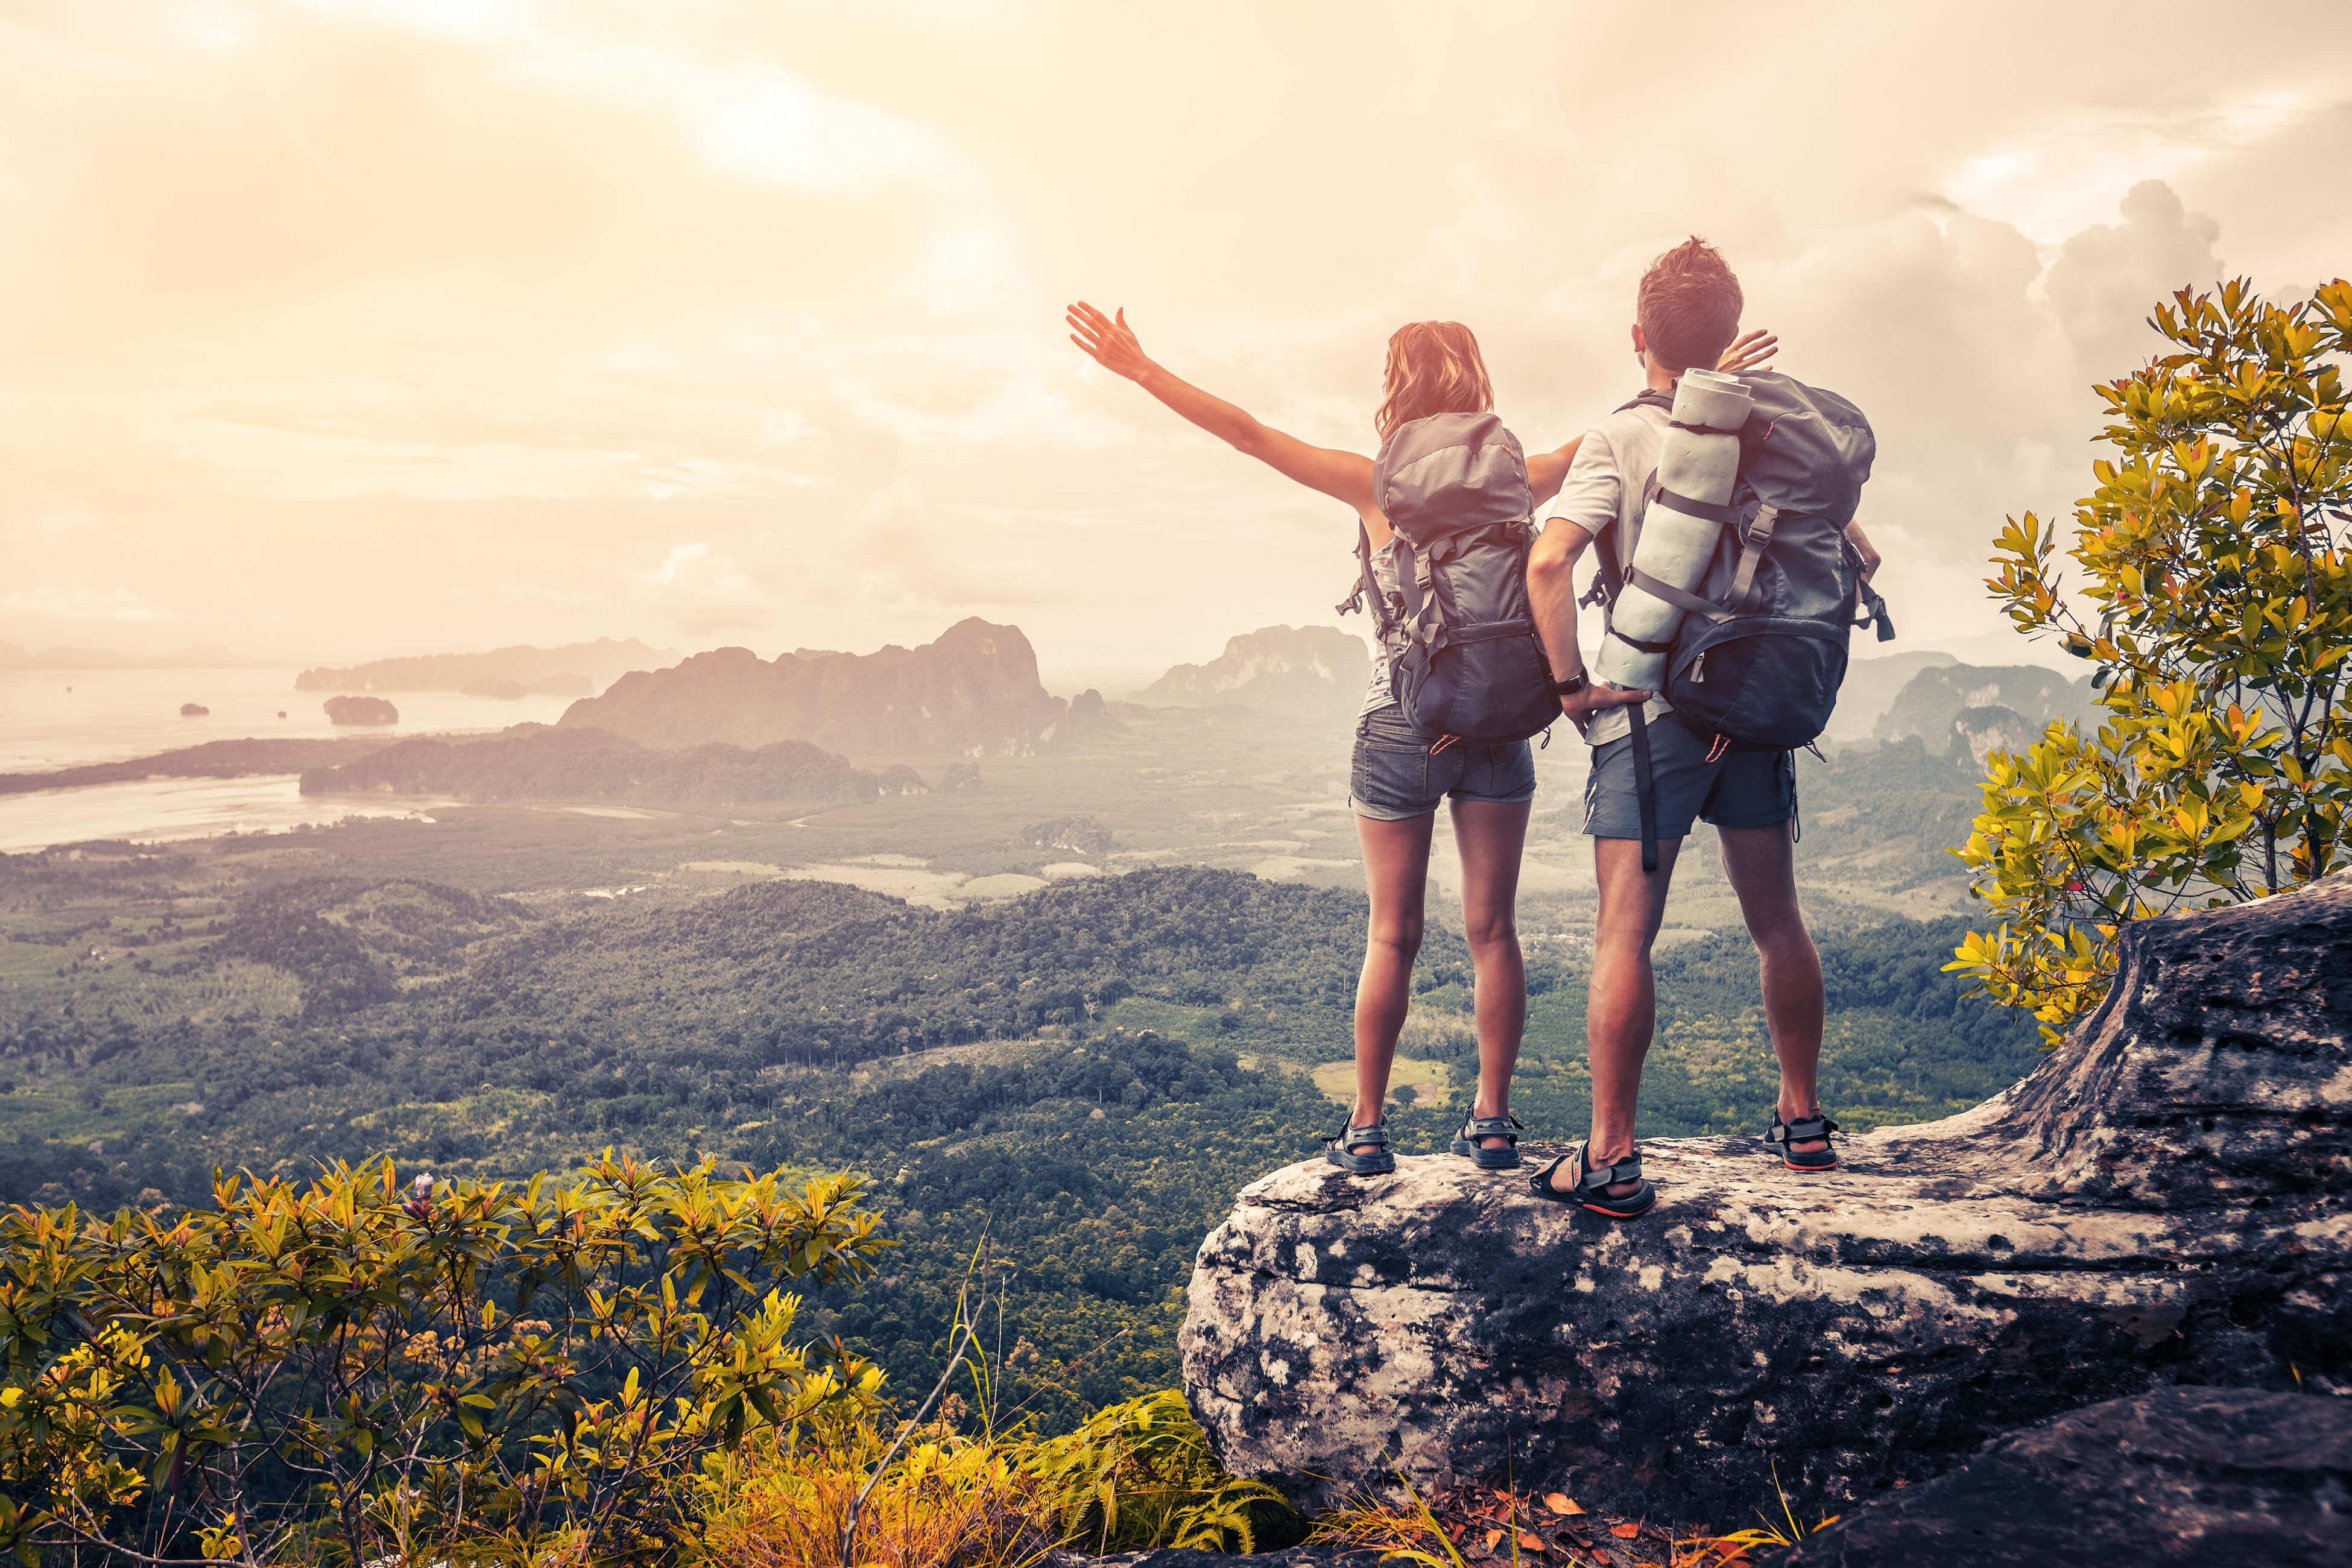 A couple climb a mountain and bask under the sunlight. | Source: Shutterstock